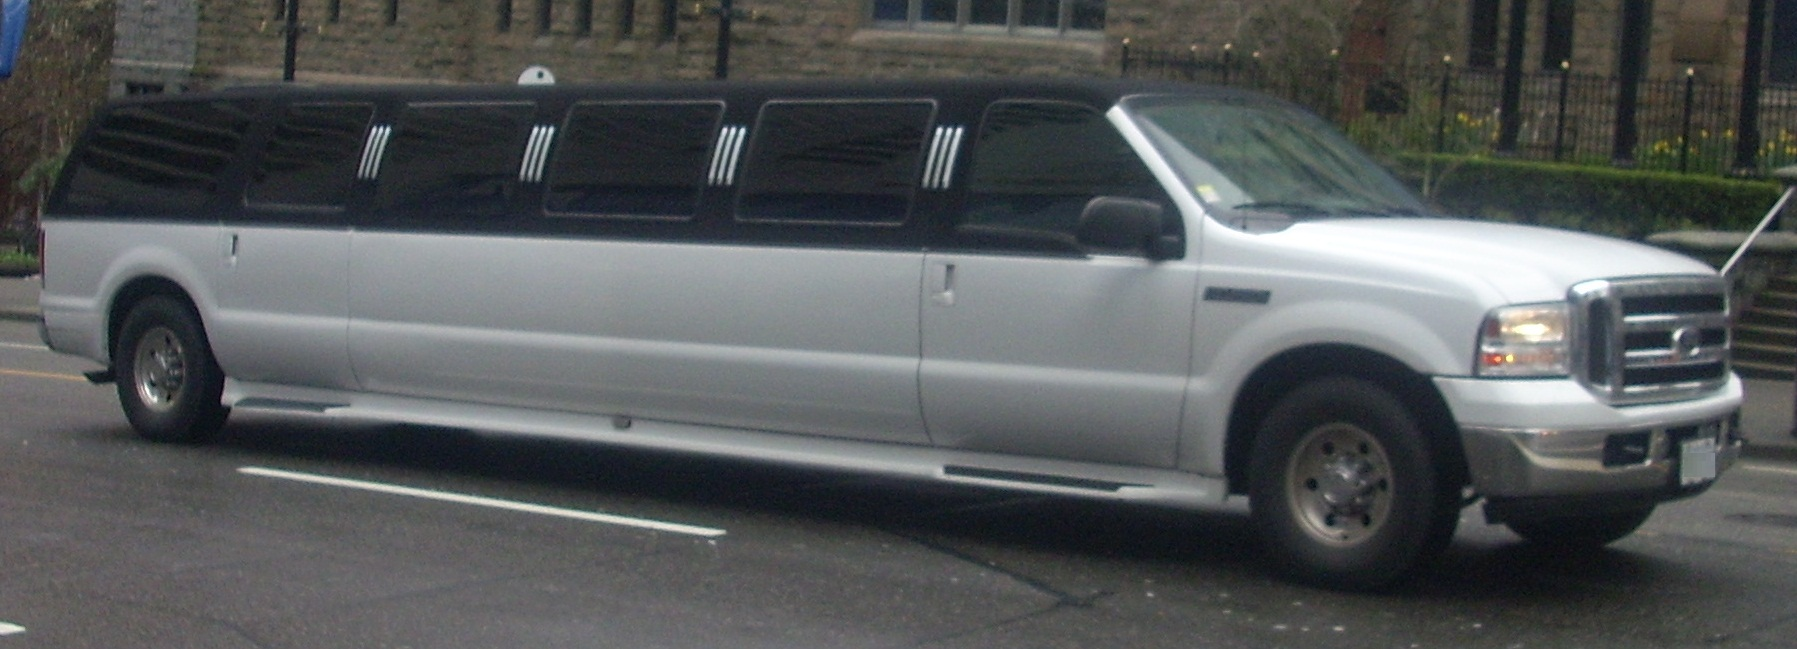 Limousine For Sale >> File:'05 Ford Excursion Limousine (Vancouver 2010).jpg - Wikimedia Commons